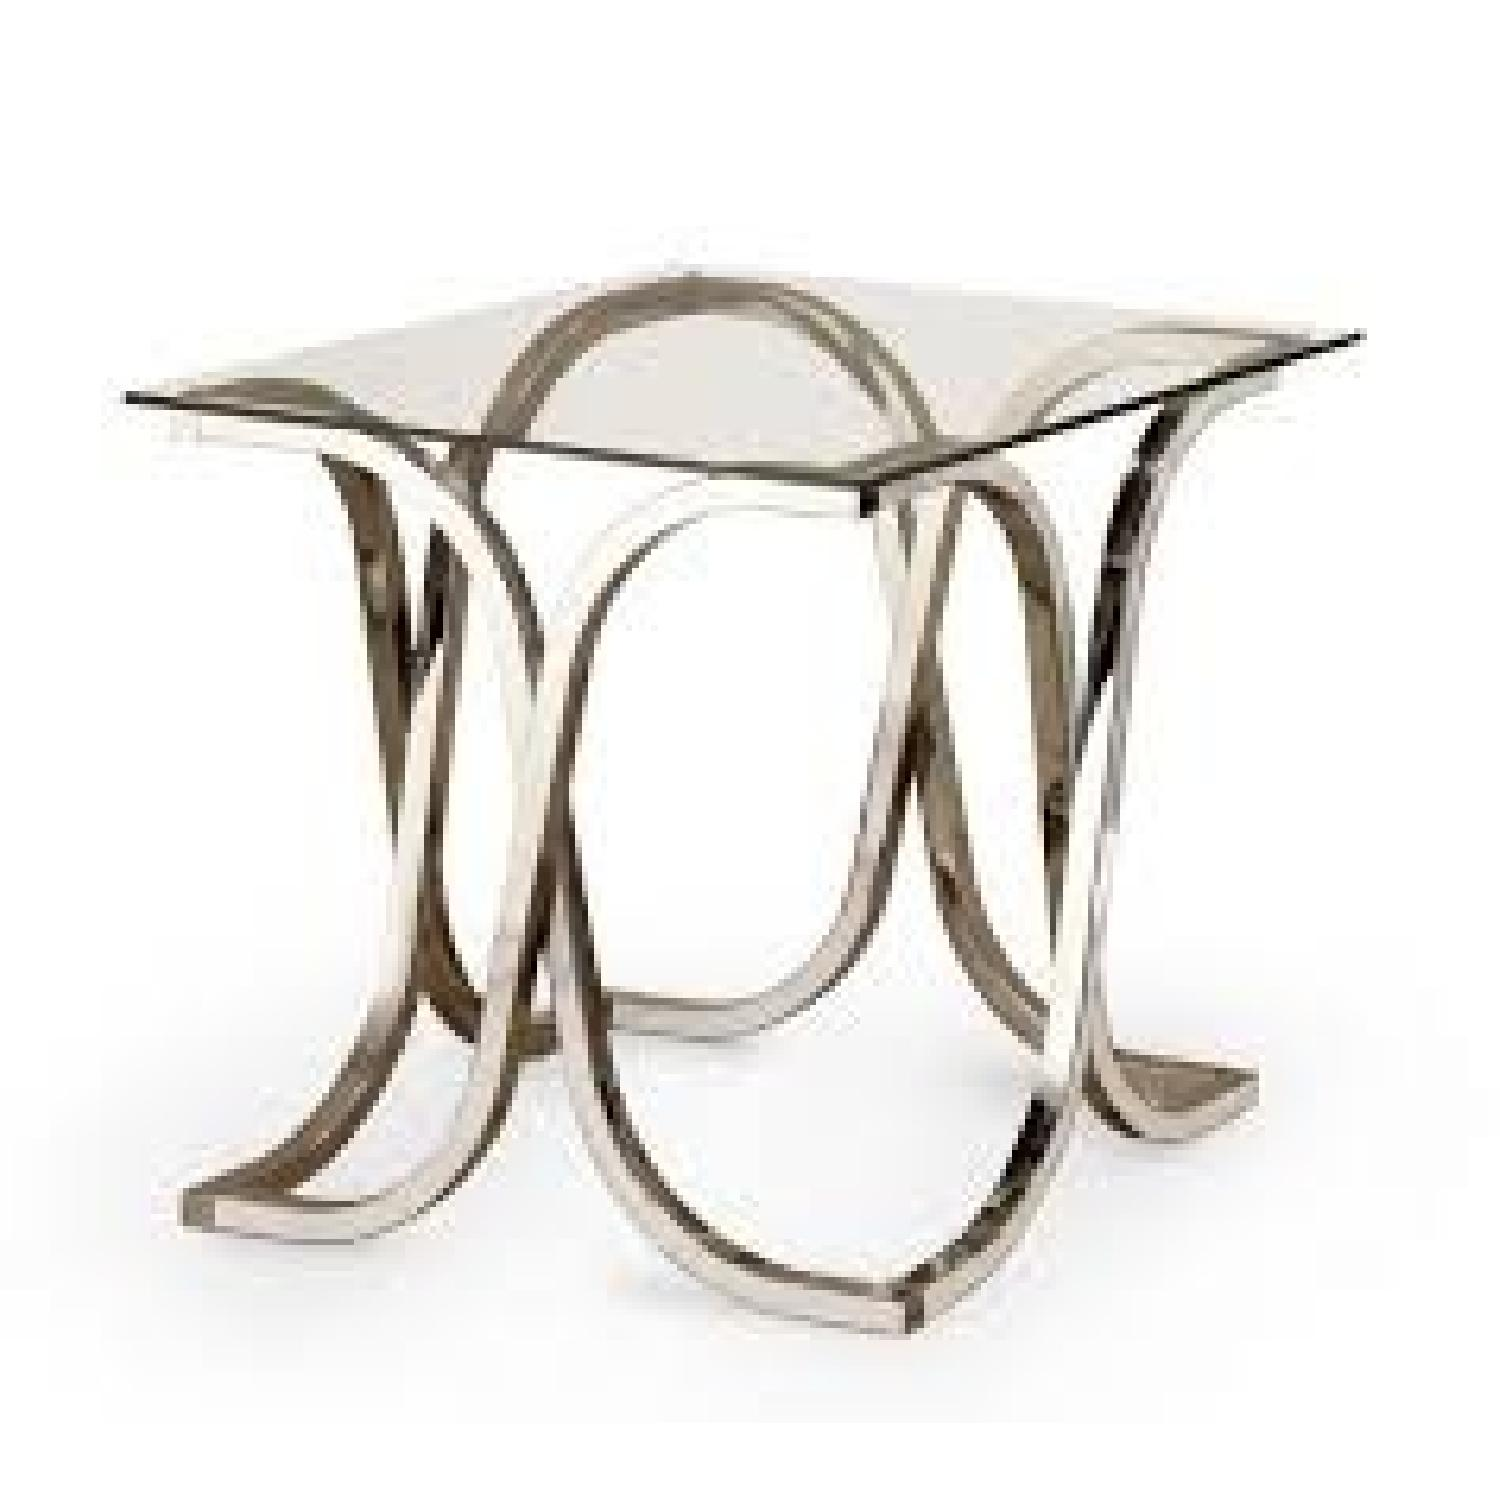 Contemporary Glass End Table in Nickel Finish - image-1